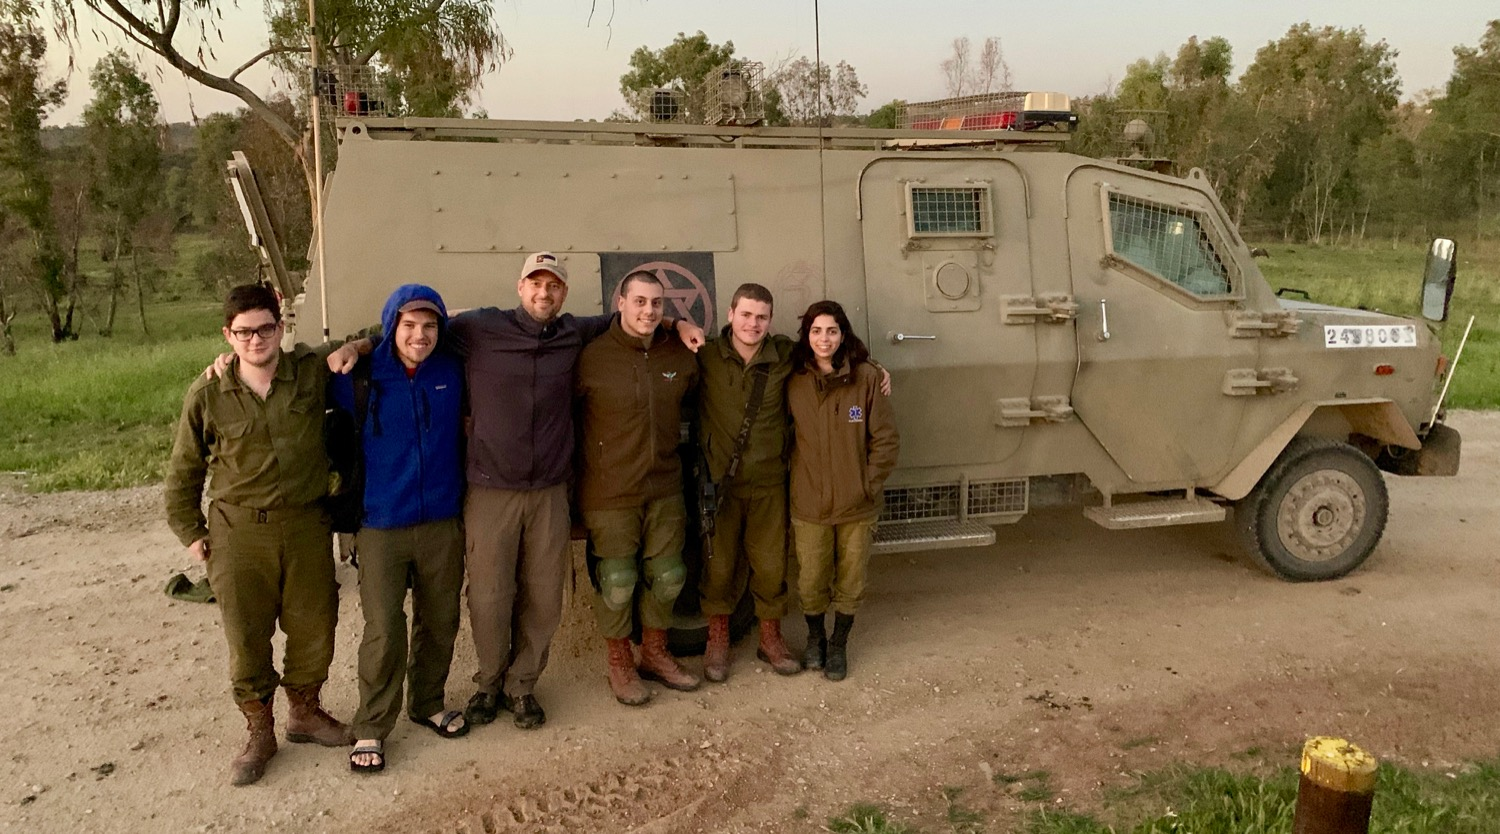 We shared with these IDF soldiers right near the border of the Gaza Strip.